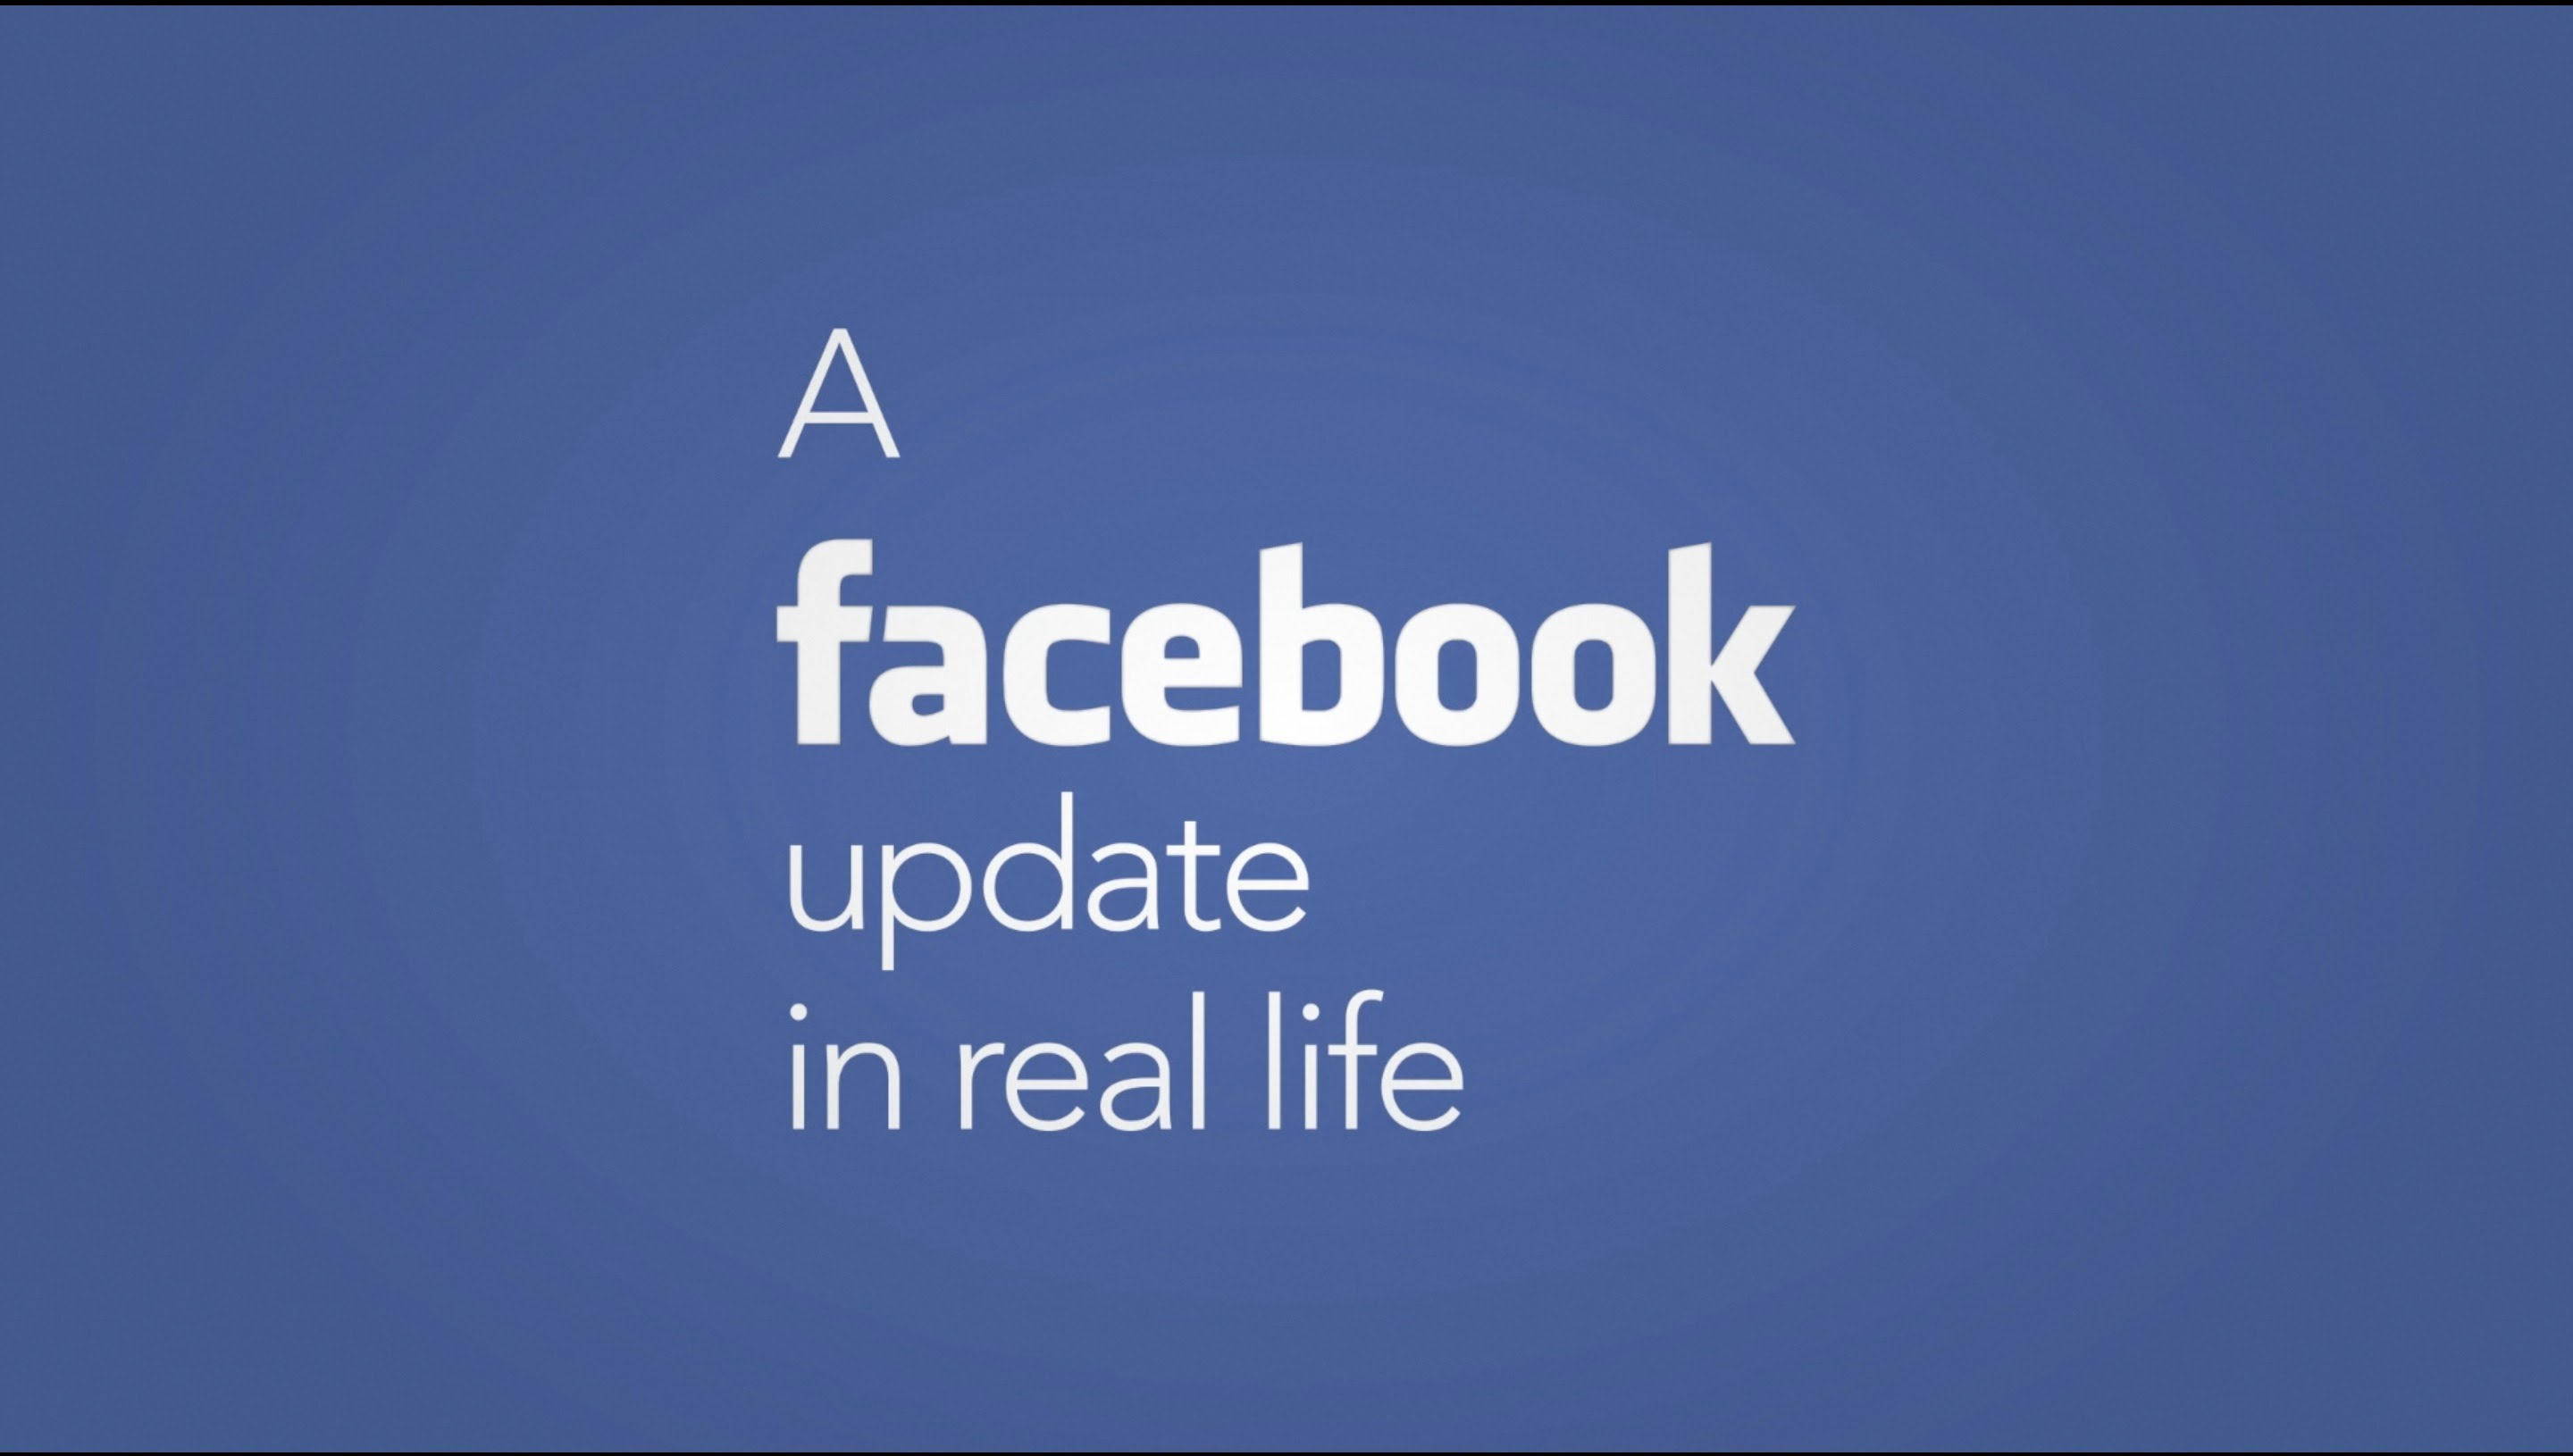 funny real life quotes for facebook